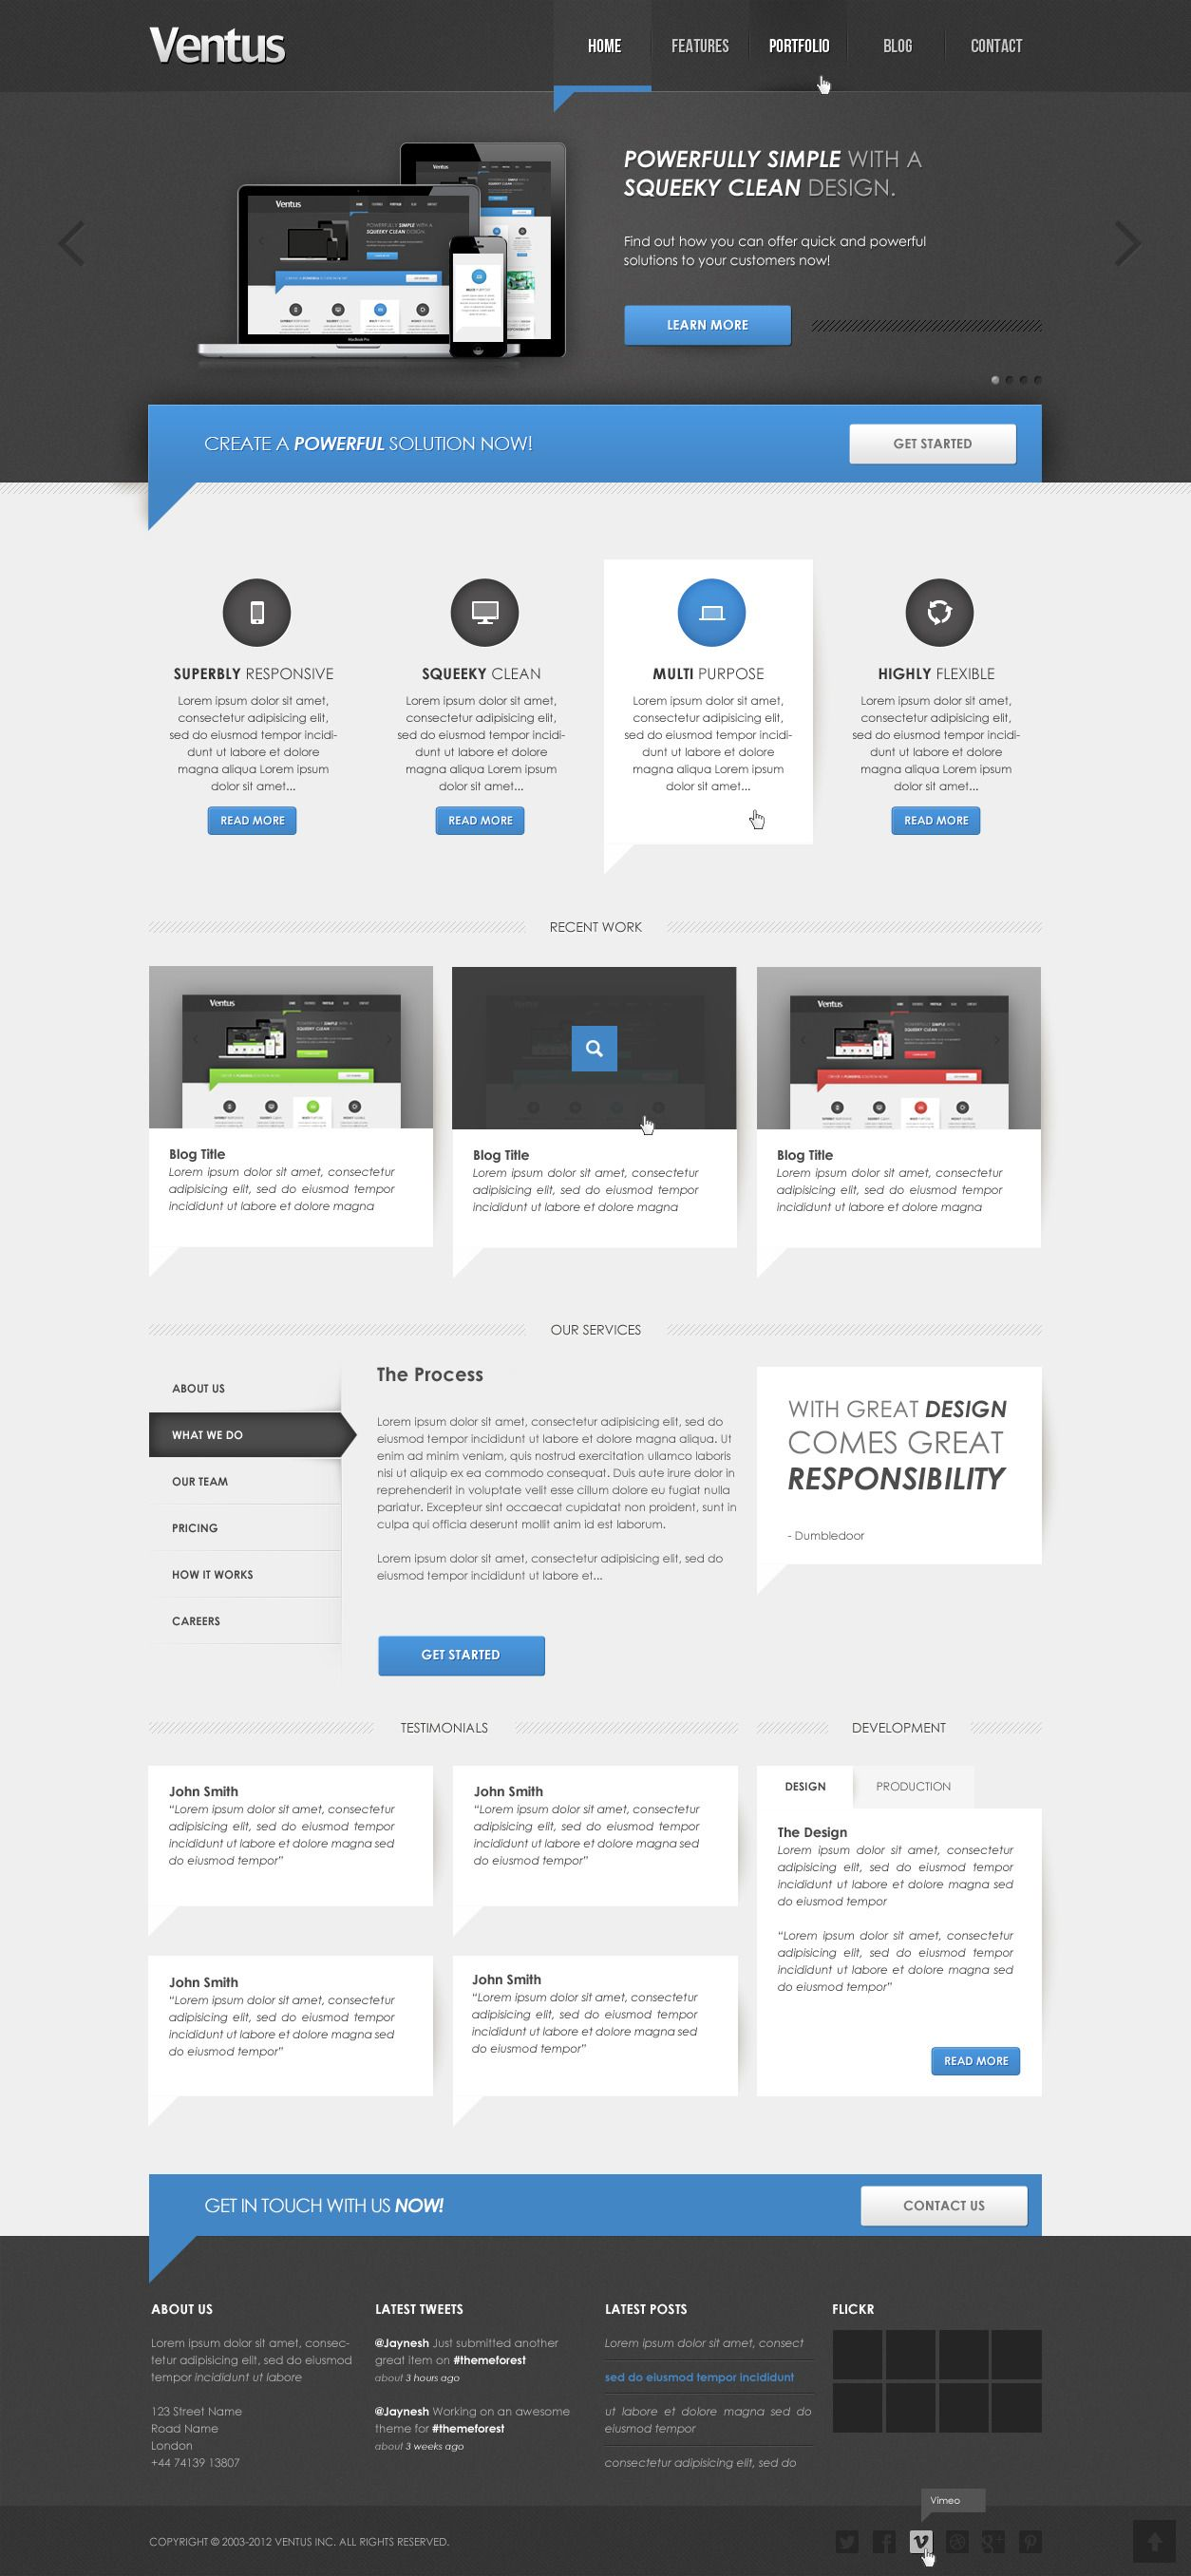 Corporate Web Design Simple Web Design Features That Look Clean And Help Organize Info On Your Site Web Design Business Web Design Small Business Web Design